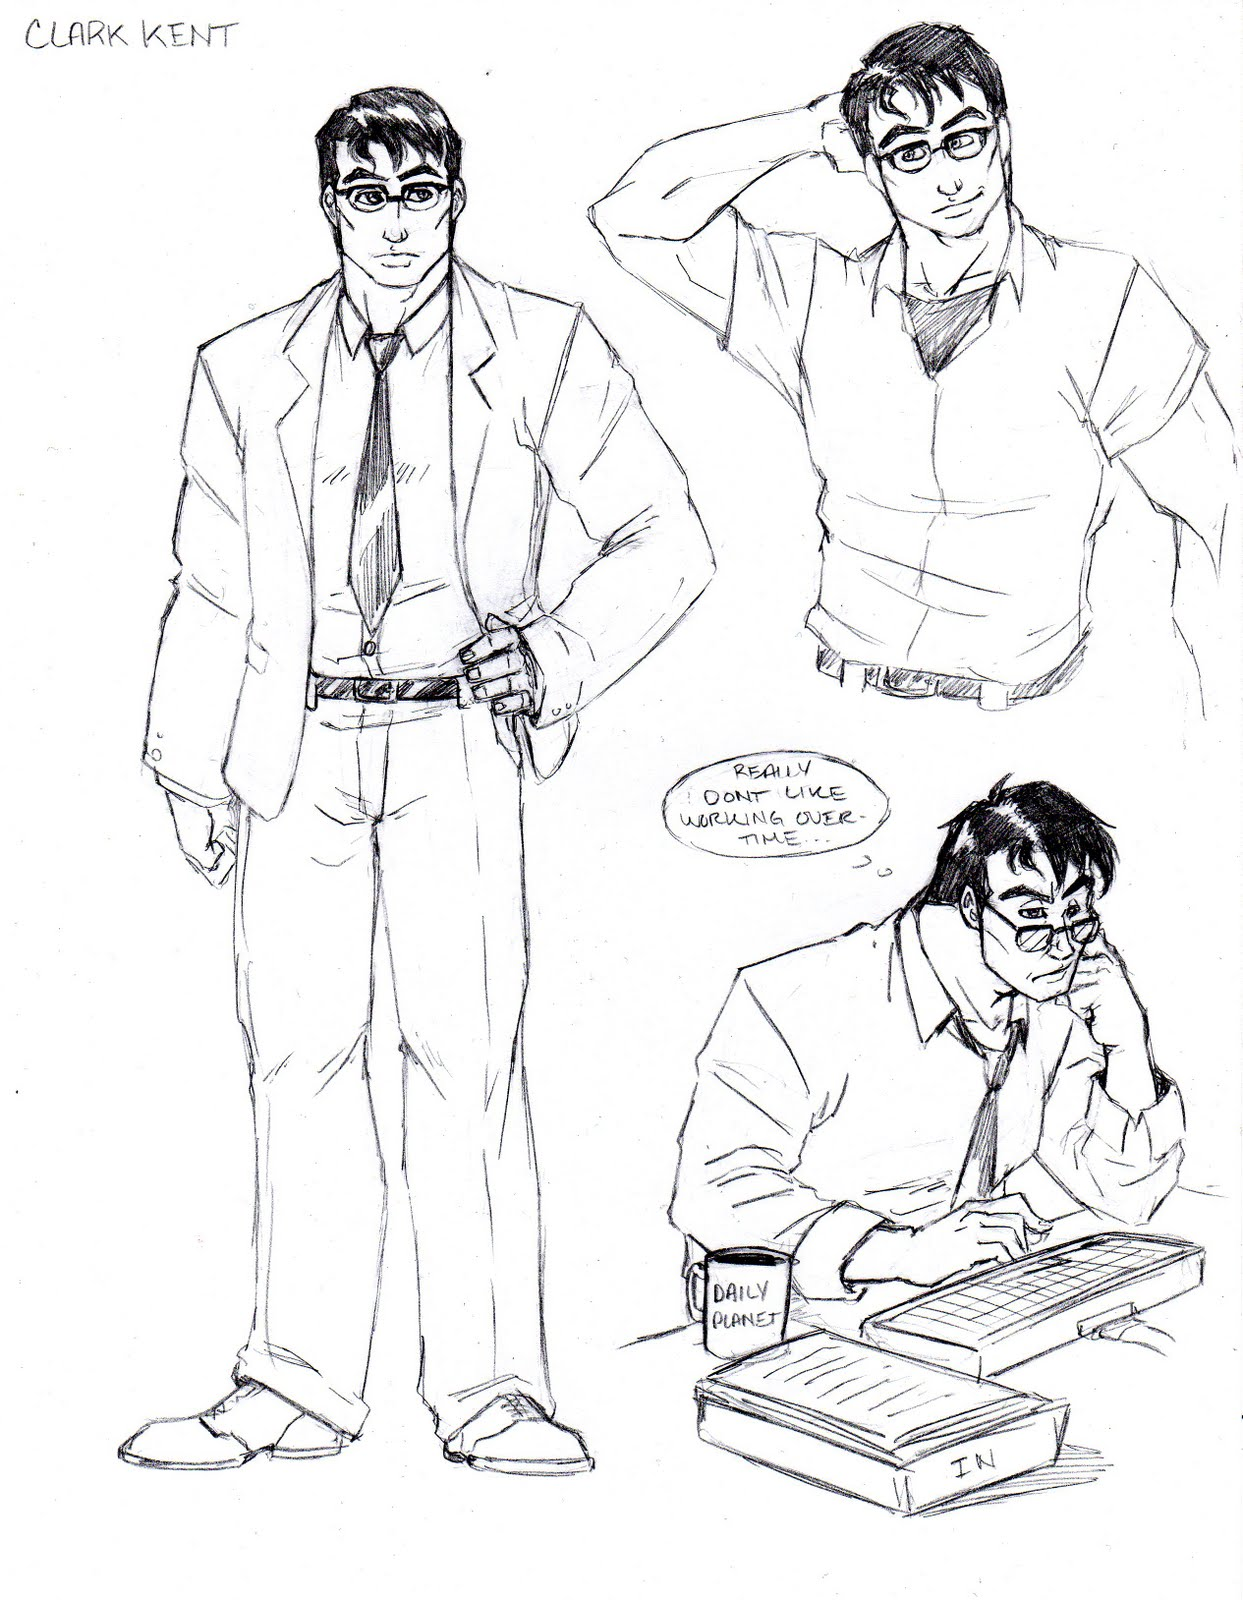 This is a picture of Magic Clark Kent Drawing